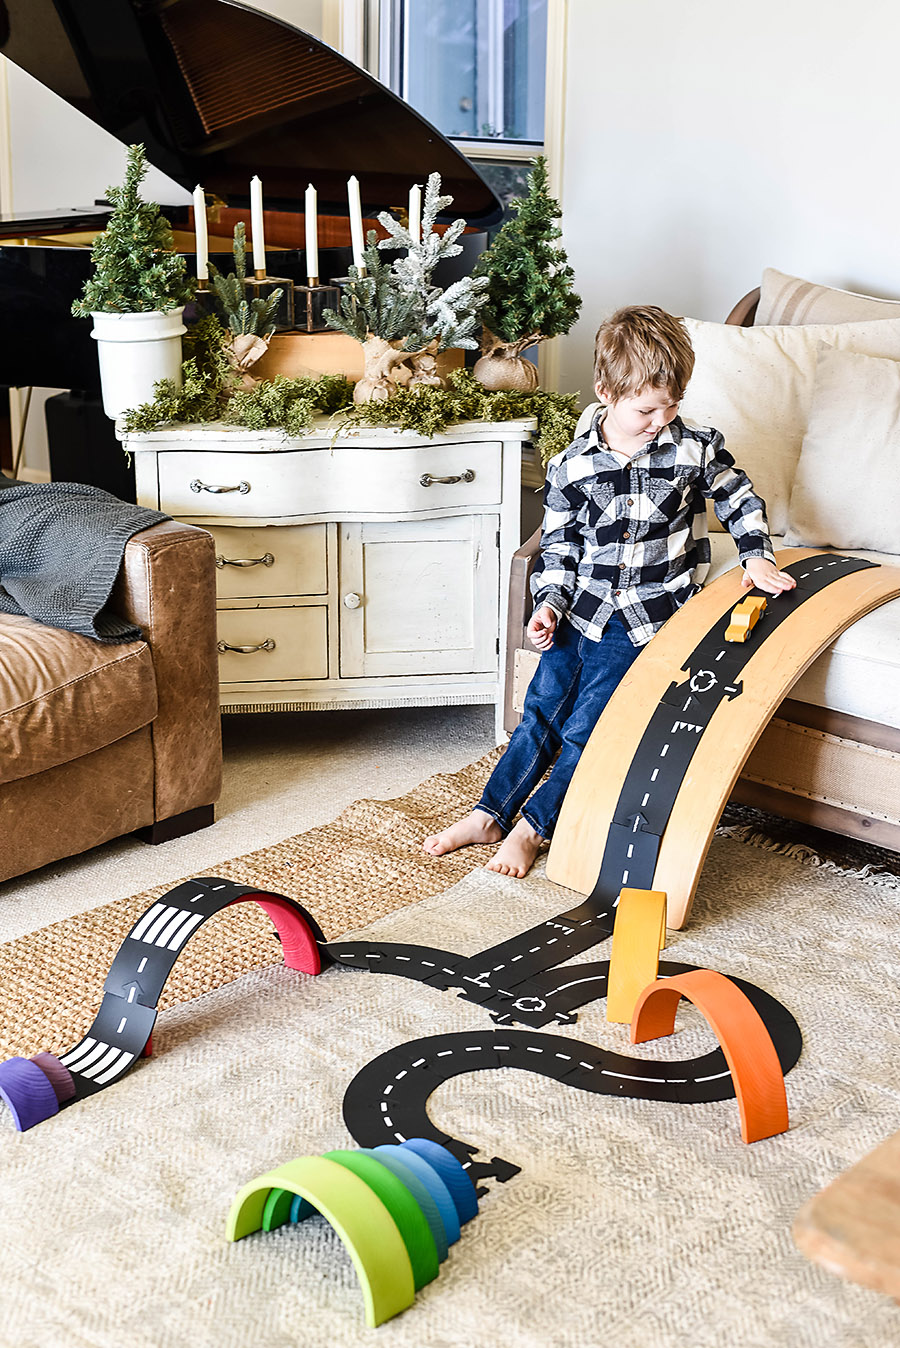 WaytoPlay Flexible Road - Simple Toys Gift Ideas - Intentional Purposeful Gift Guide for Kids - Our Handcrafted Life